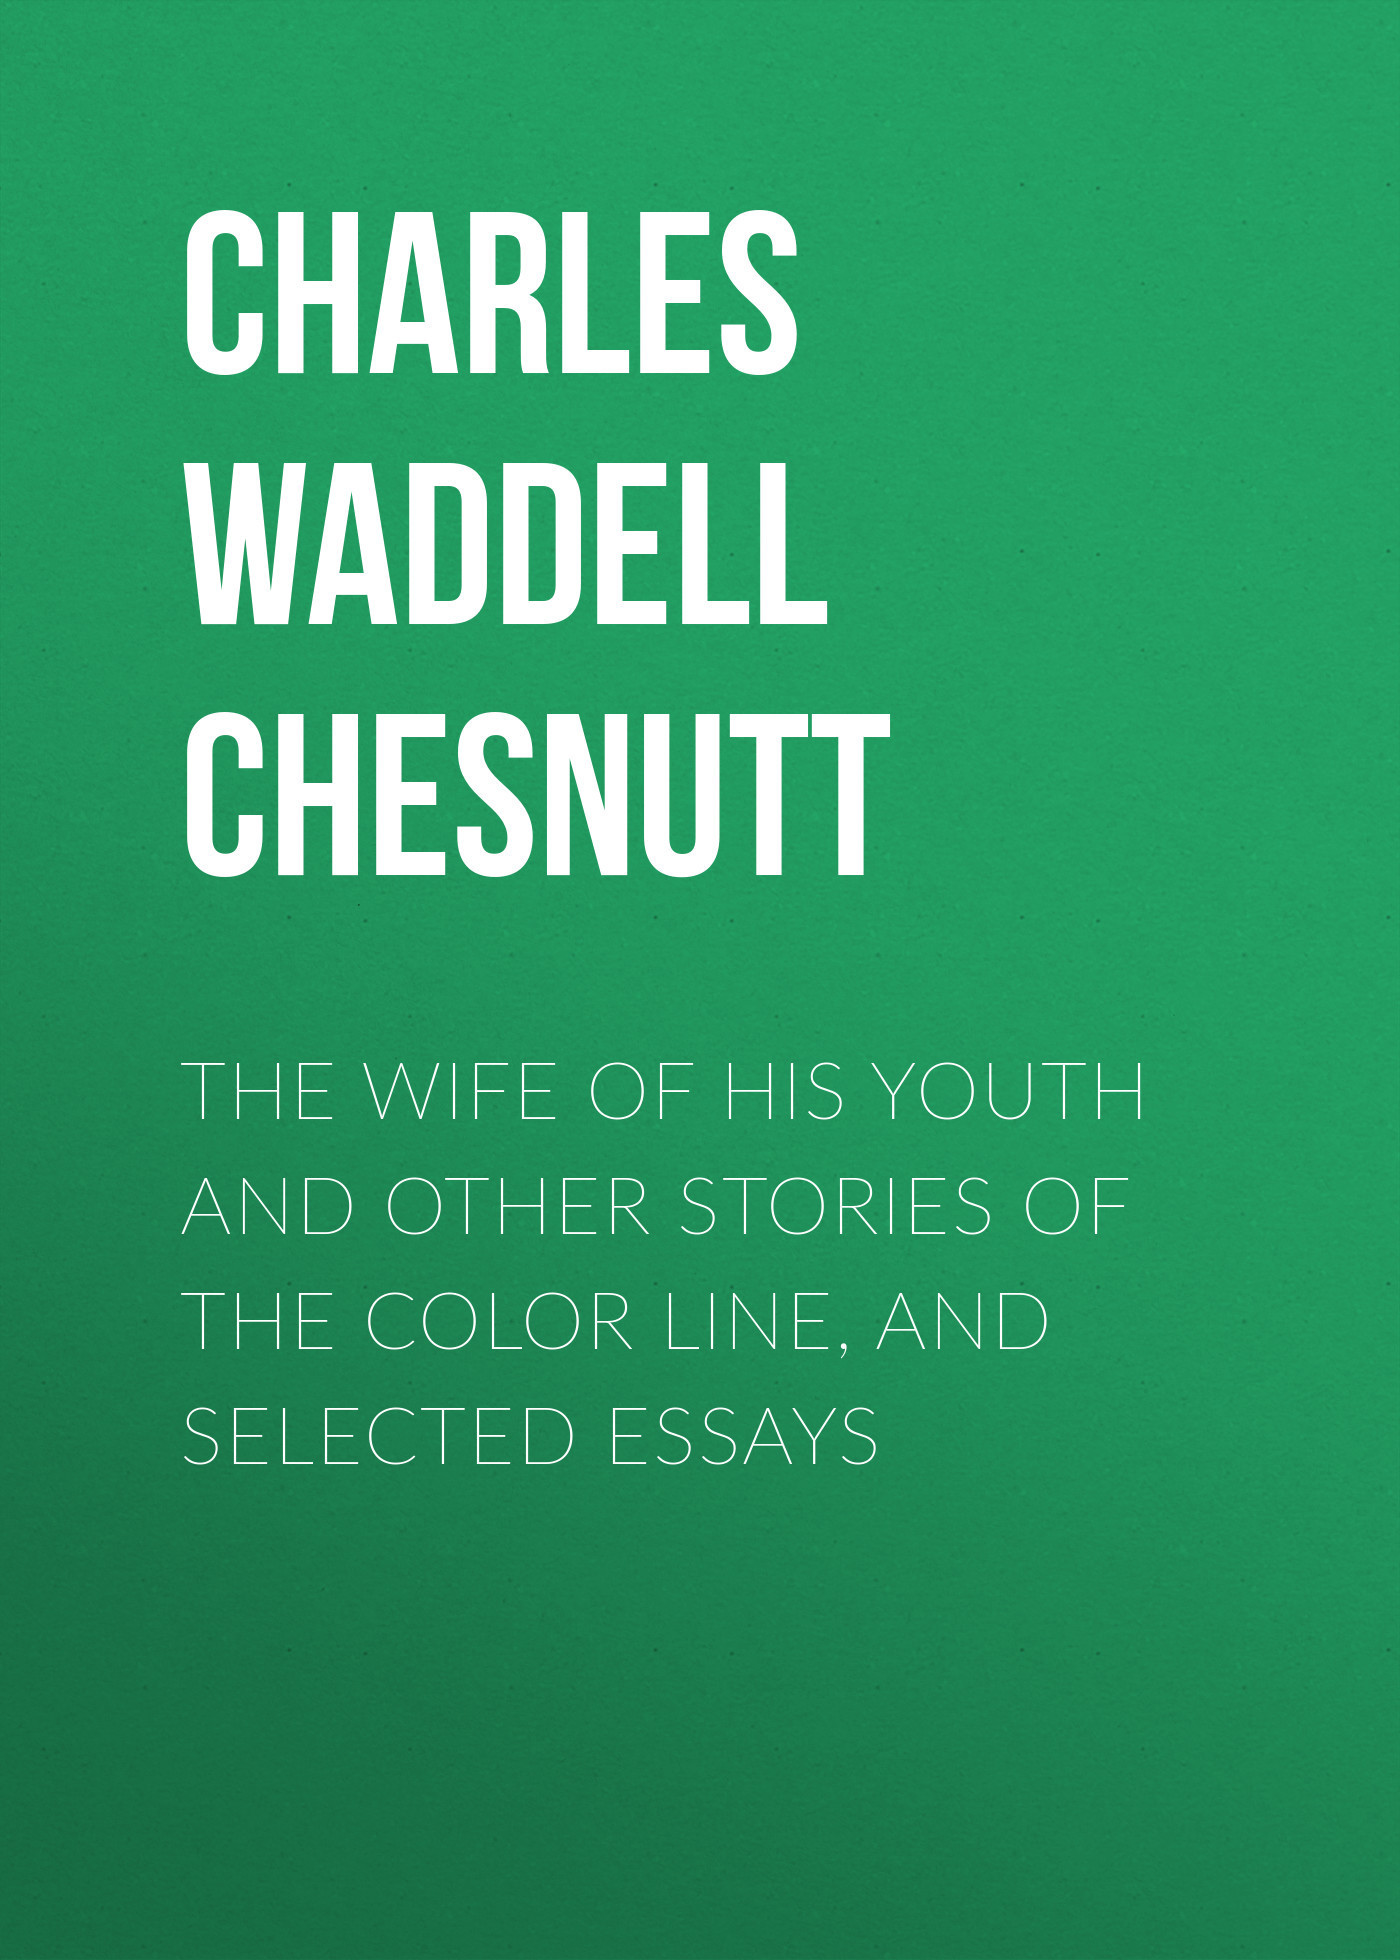 Charles Waddell Chesnutt The Wife of his Youth and Other Stories of the Color Line, and Selected Essays counterculture and youth the music of protest